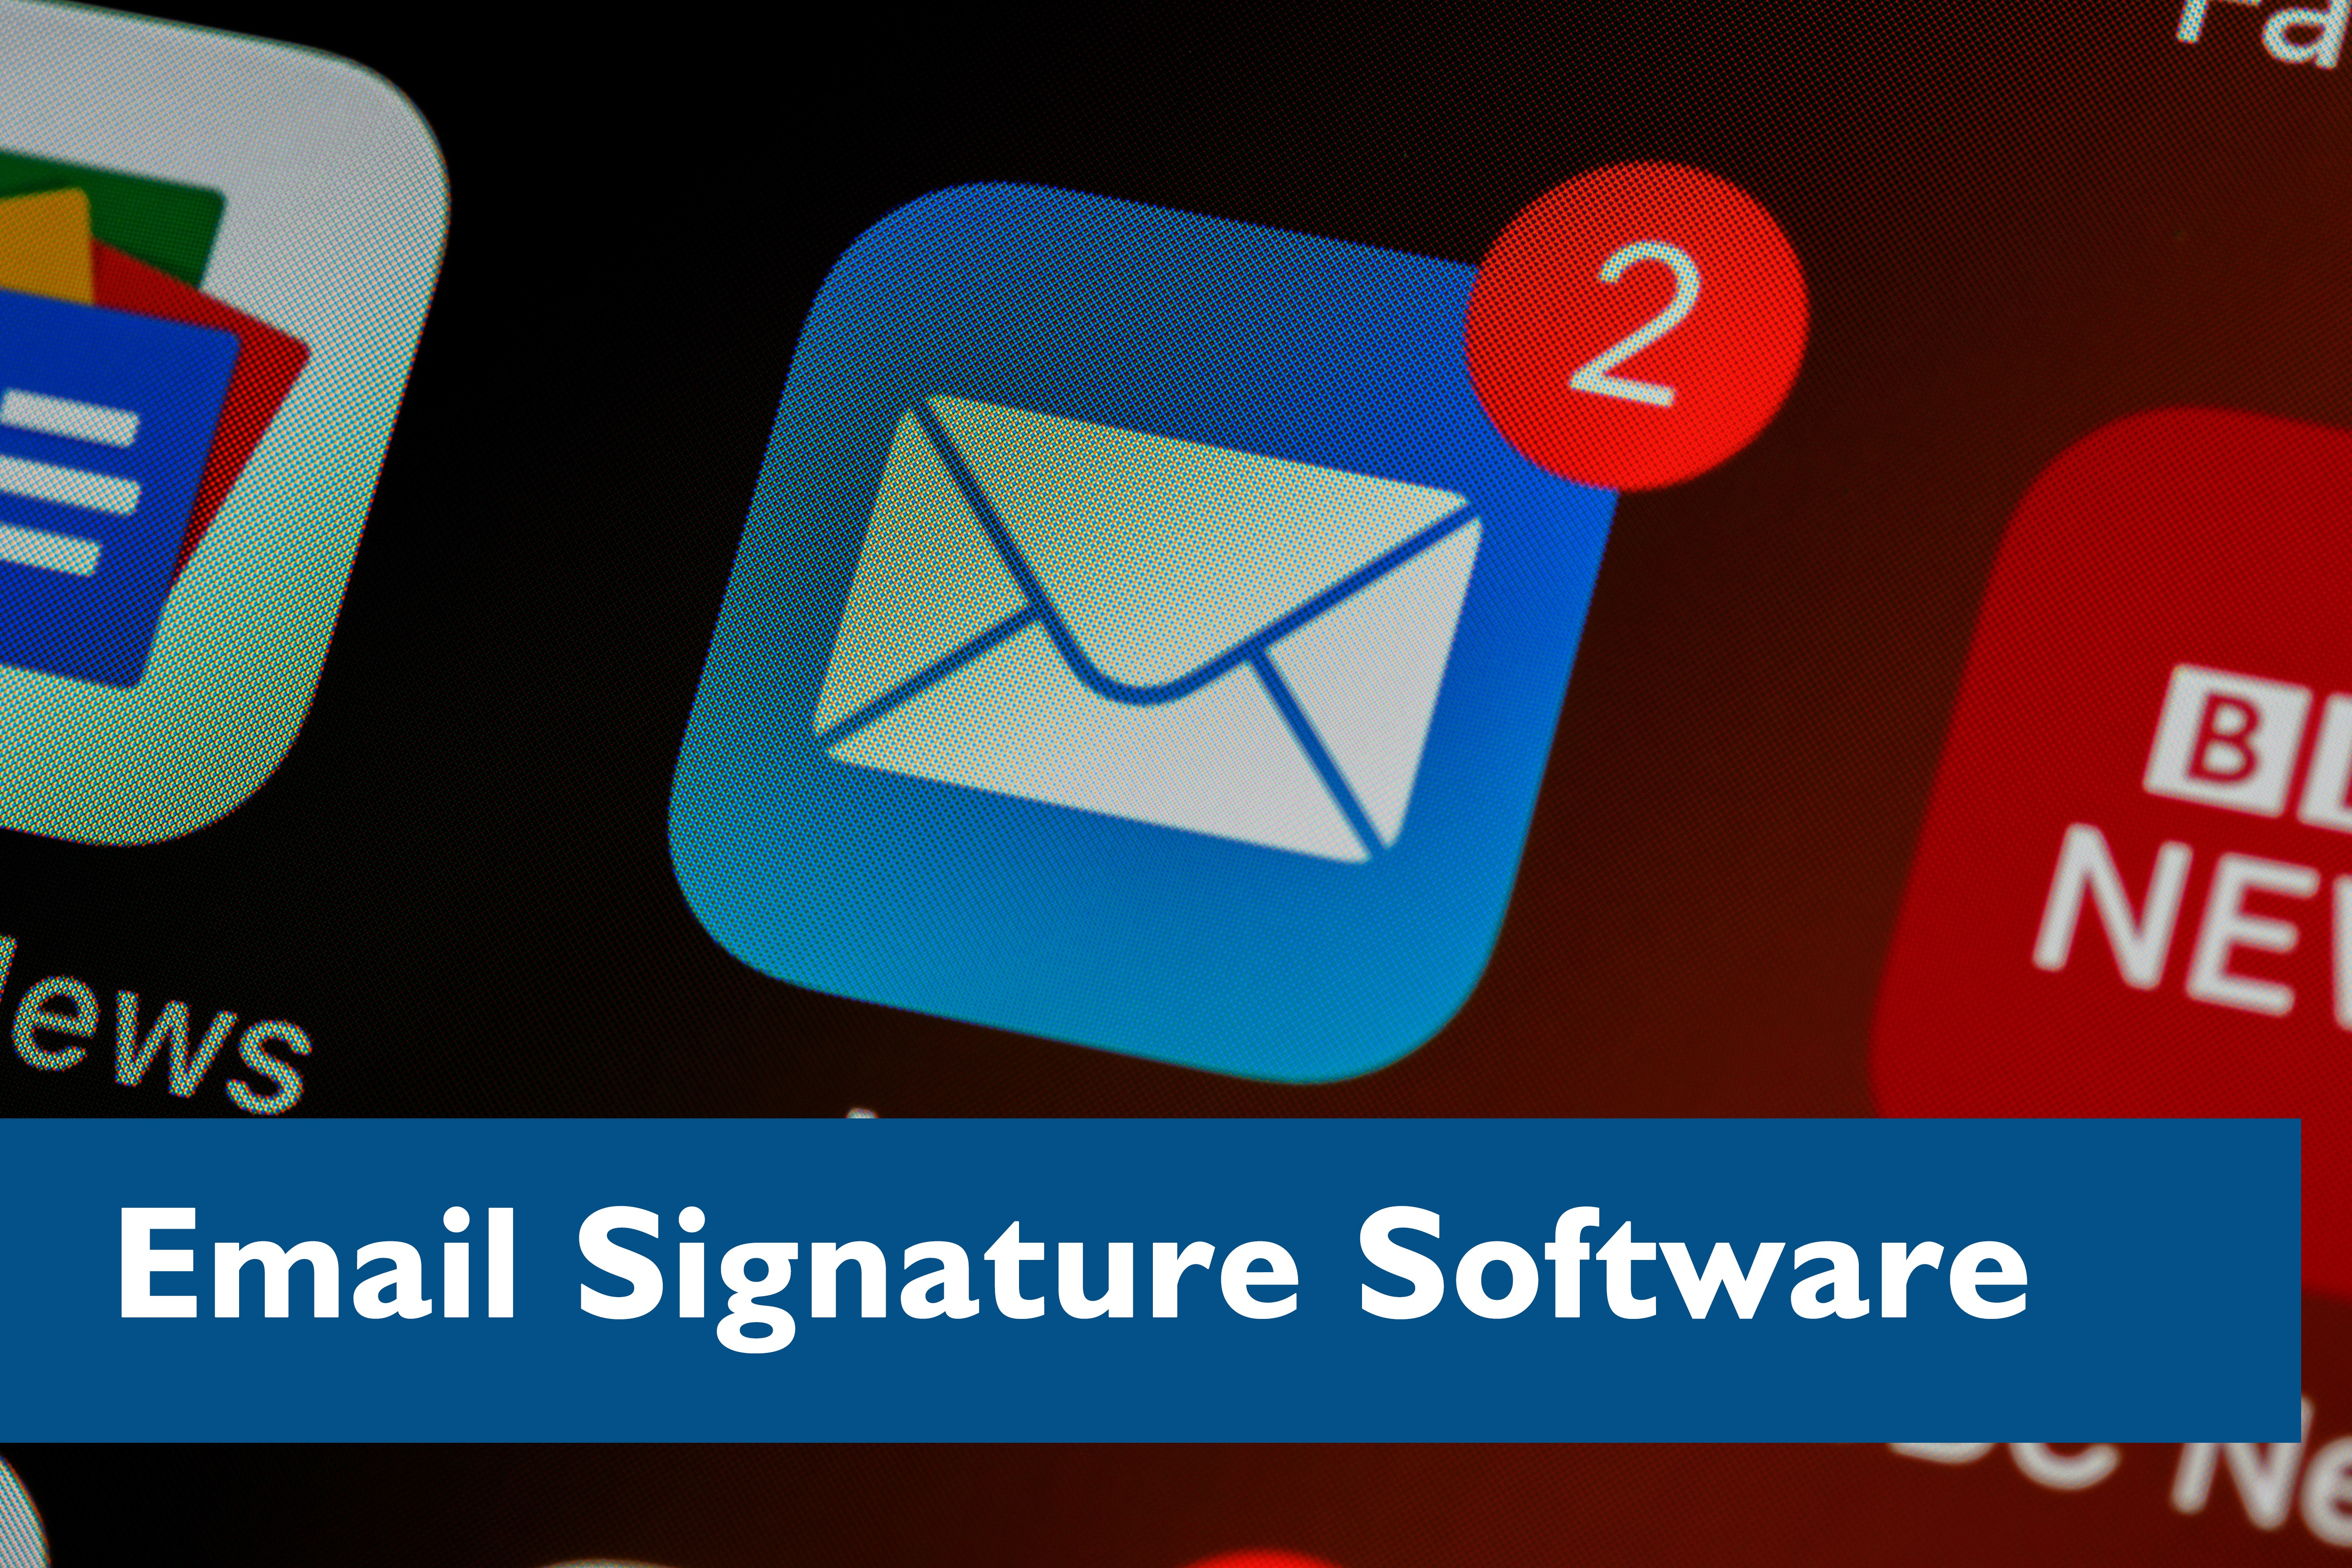 Email Signature Software